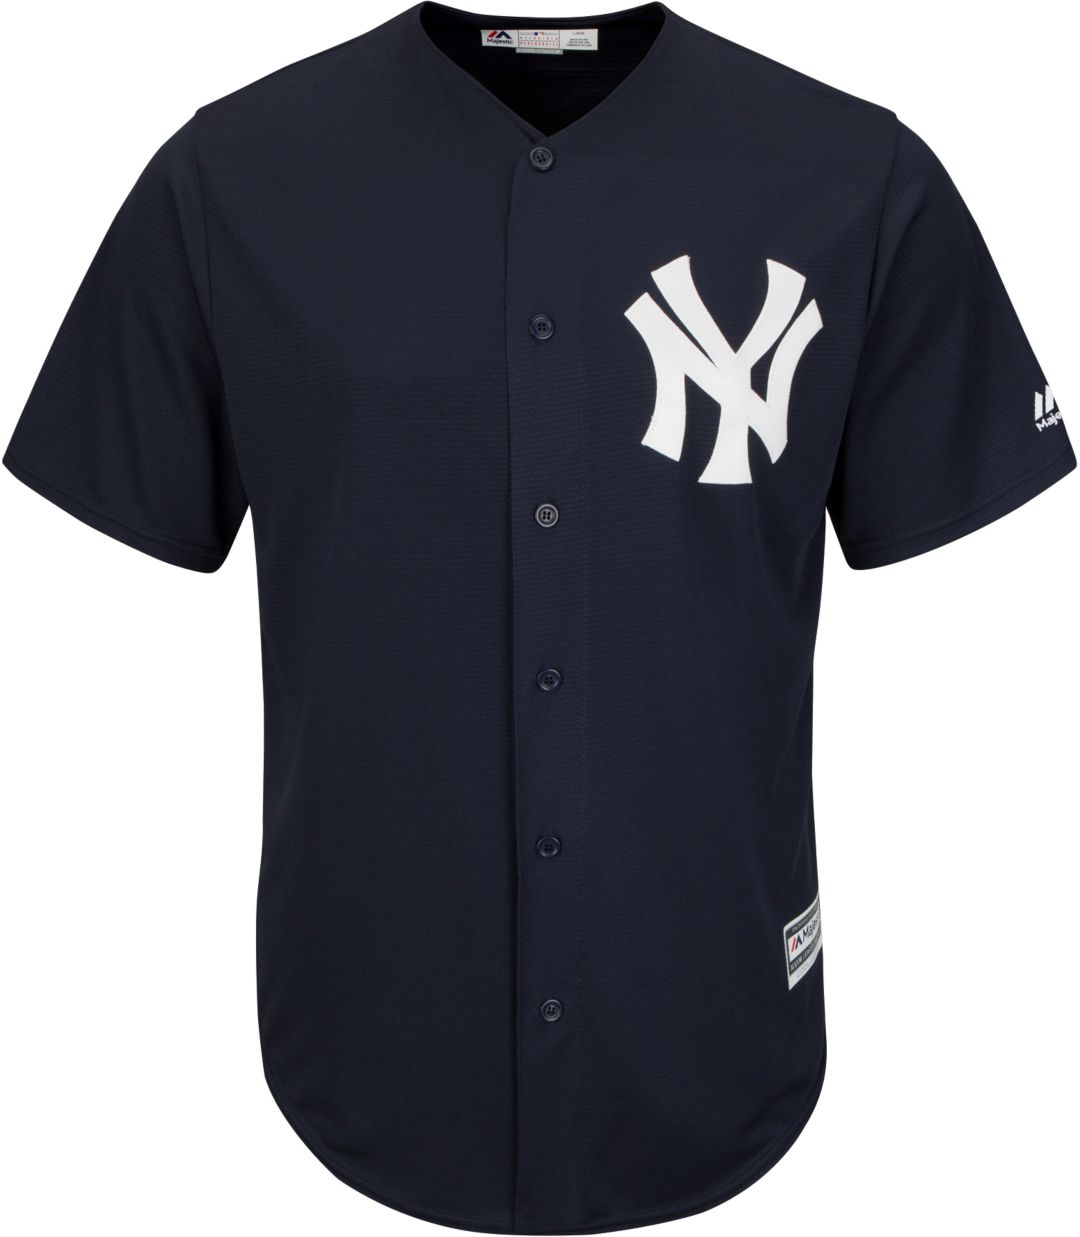 uk availability 0f2ba 21127 Majestic Men's Replica New York Yankees Gleyber Torres #25 Cool Base  Alternate Navy Jersey